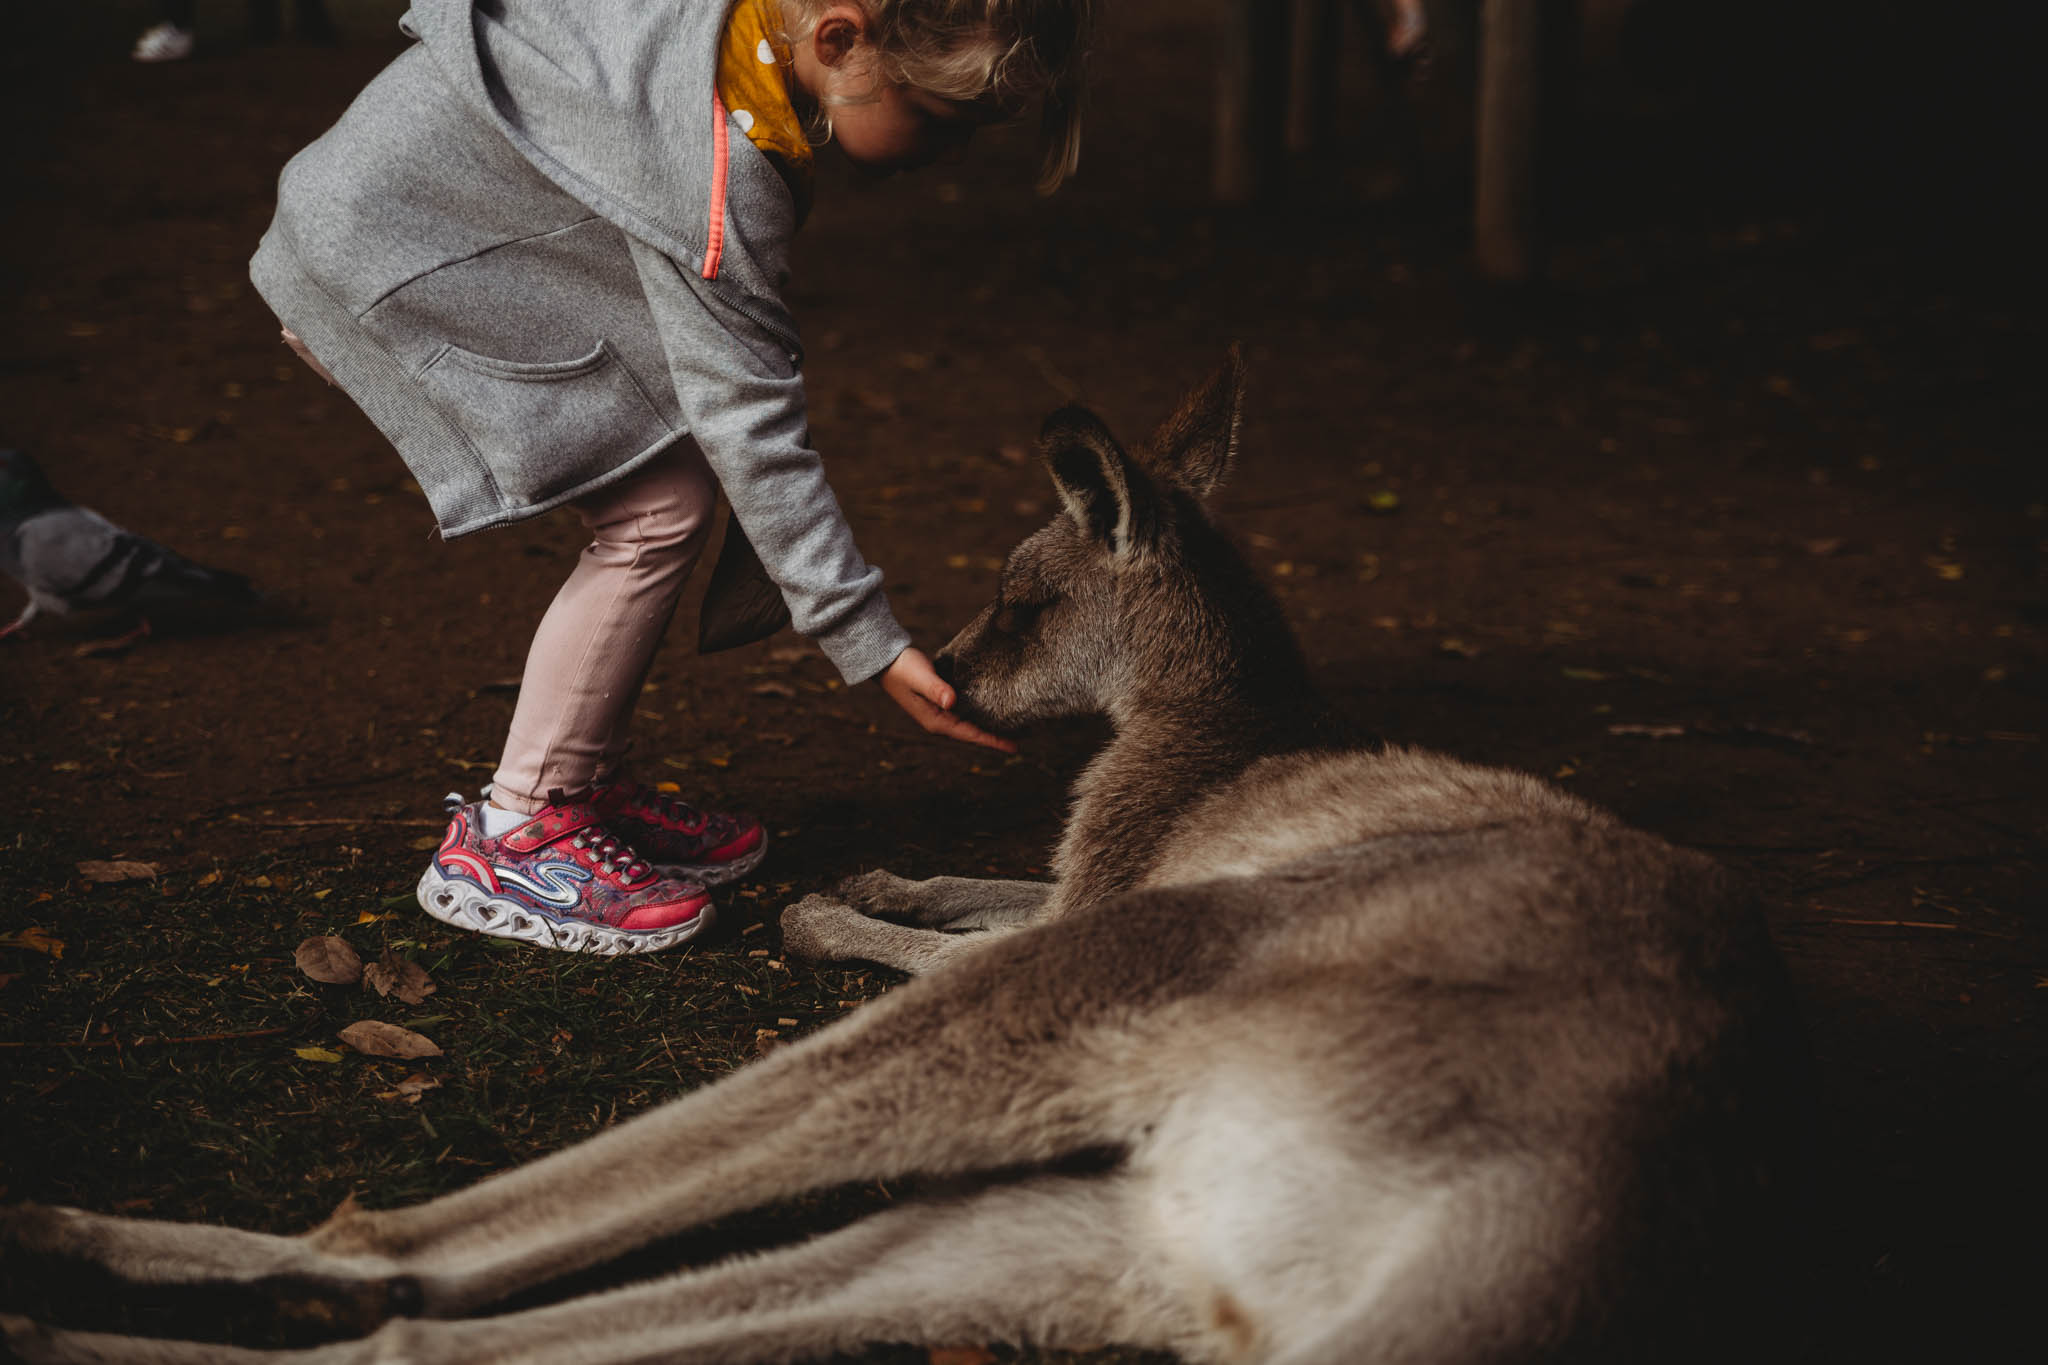 The kangaroos were quite well fed